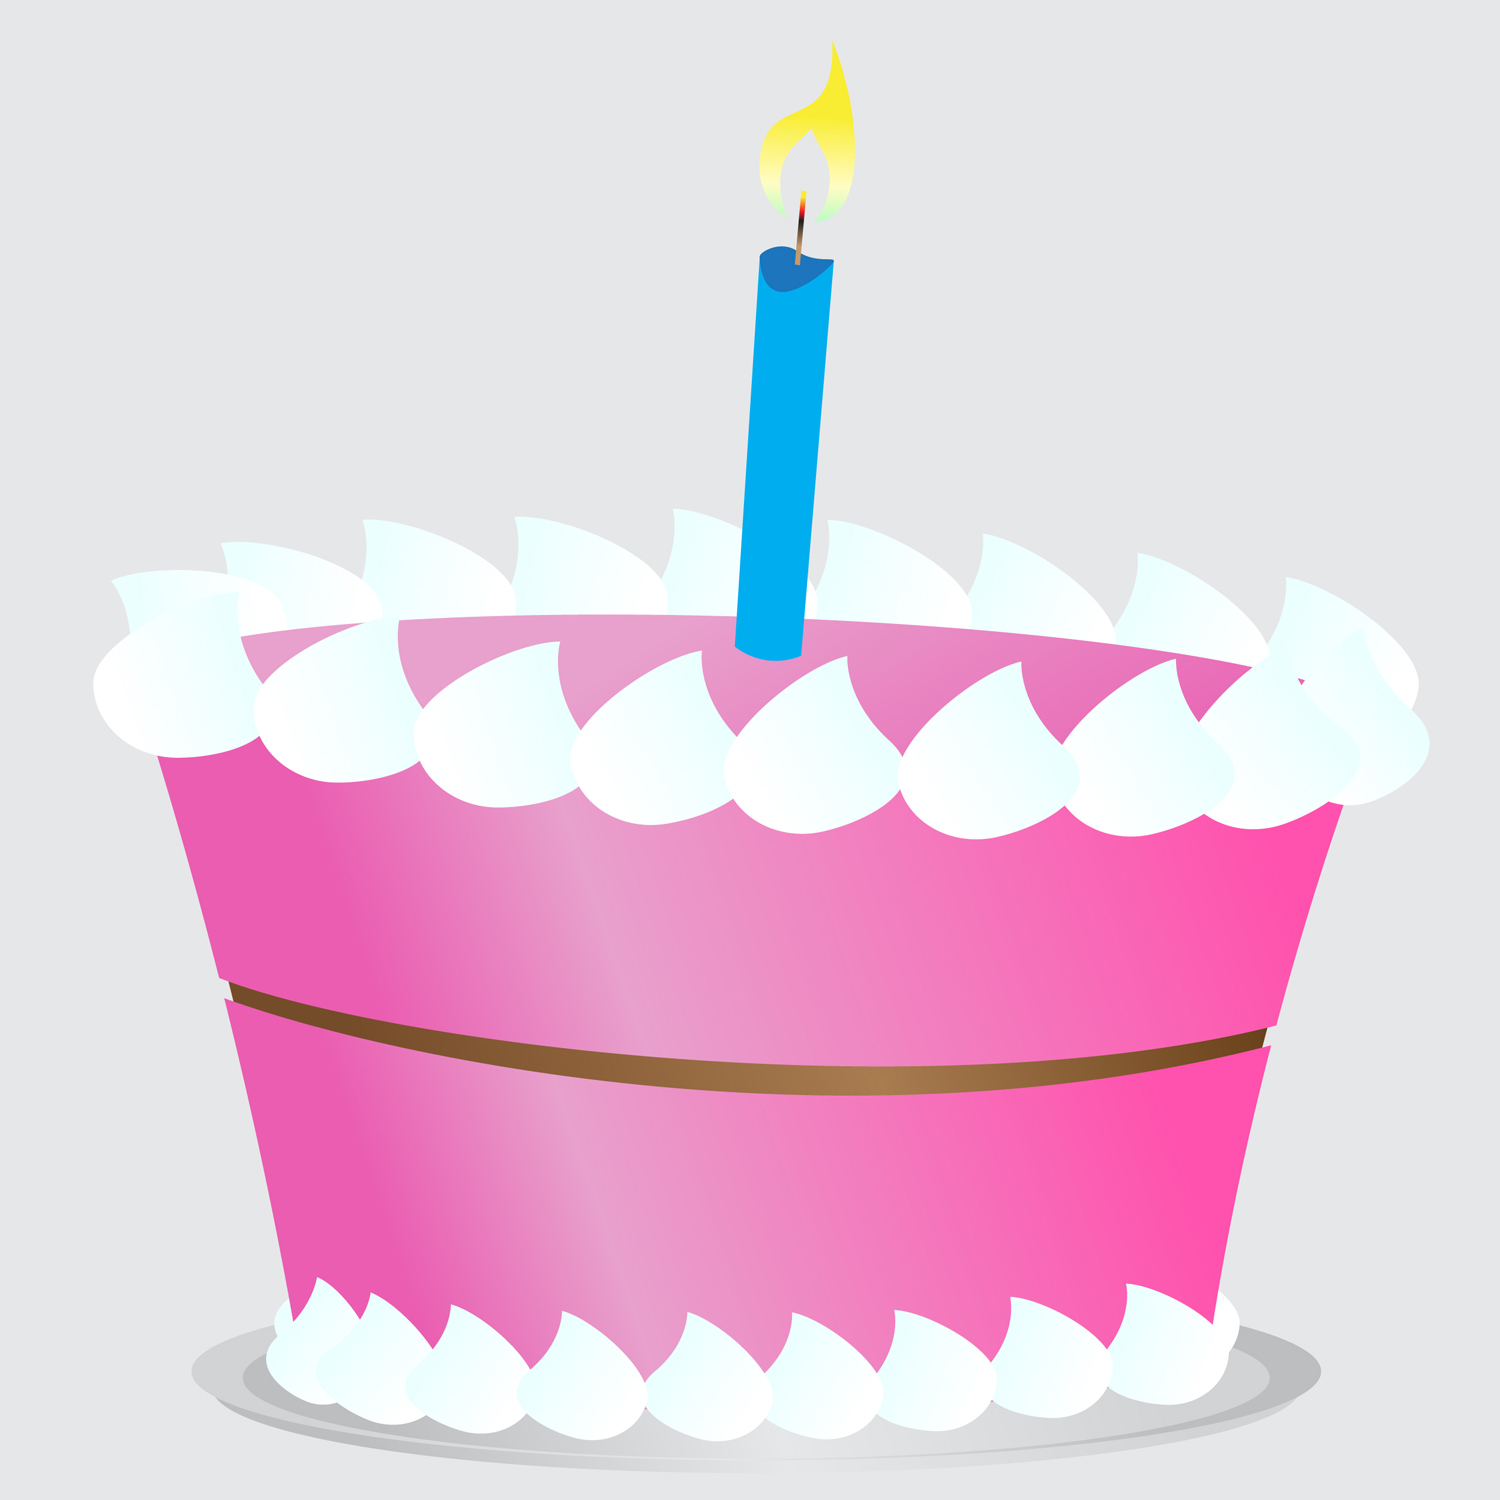 Birthday Cake Clipart Simple Vector Illustration Of A Pink ...